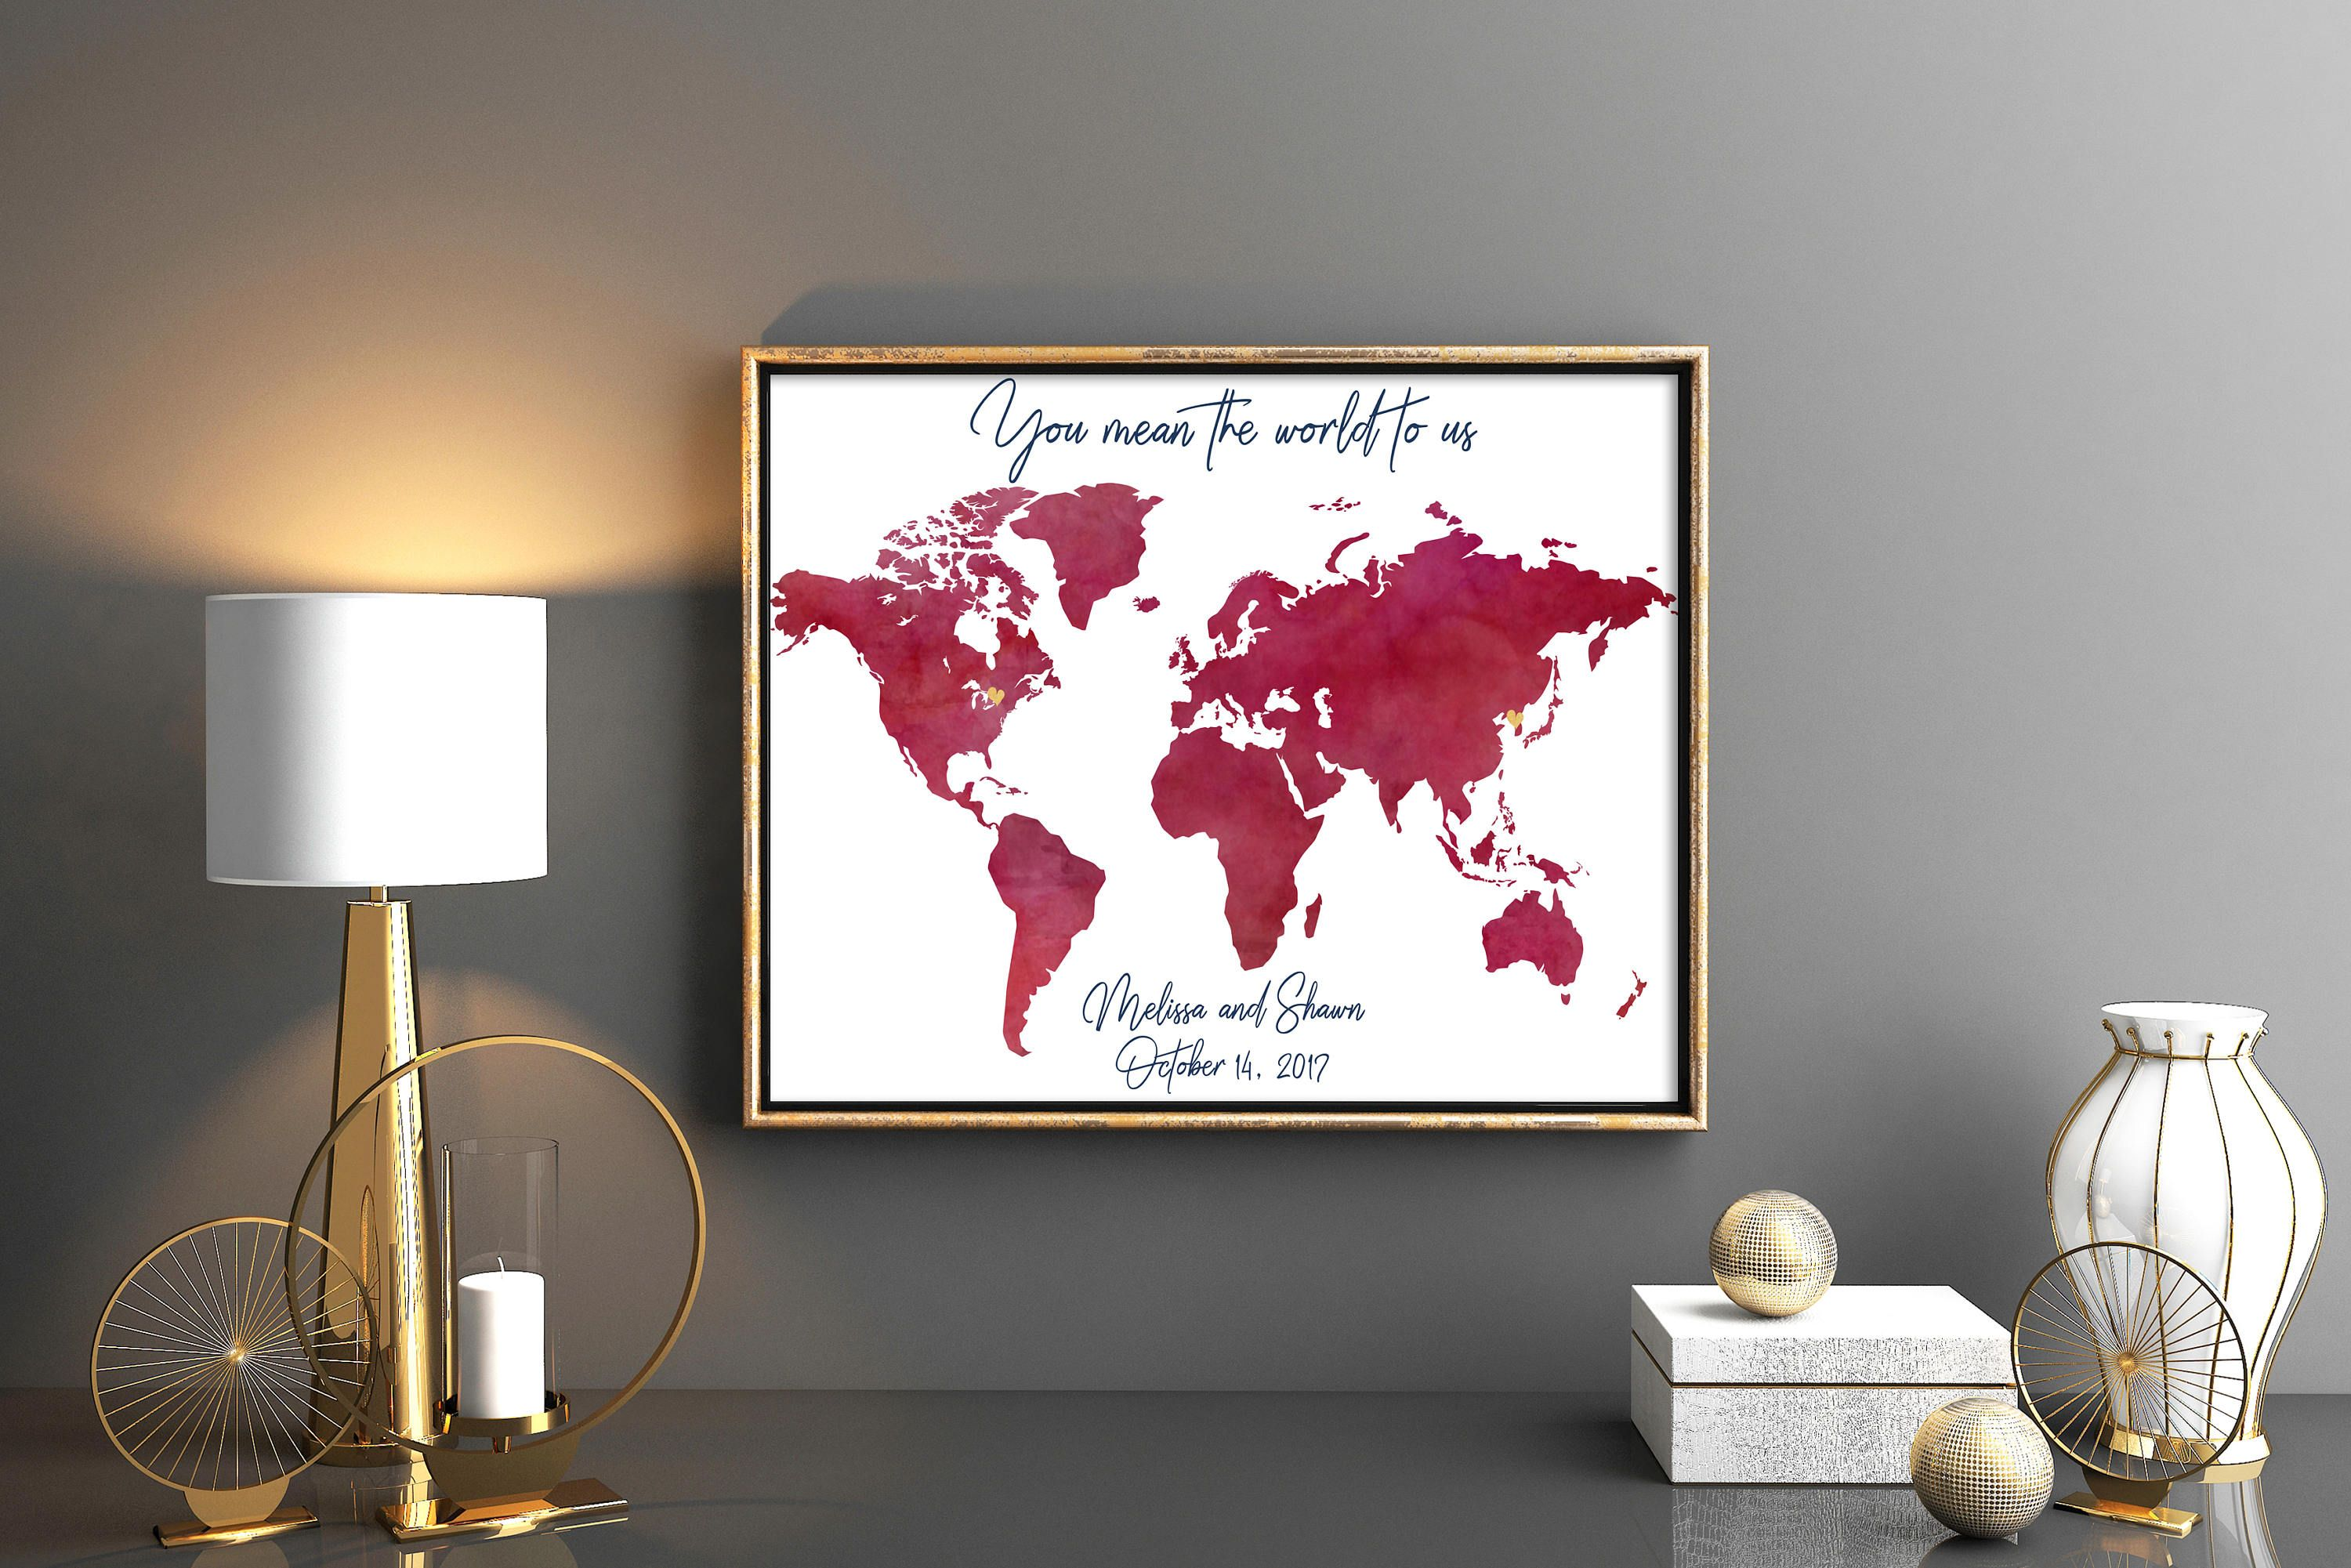 Burgundy wedding guestbook maroon world map guest book wine map burgundy wedding guestbook maroon world map guest book wine map wedding guest book ruby wedding map magenta scarlet guest book marshala gumiabroncs Image collections